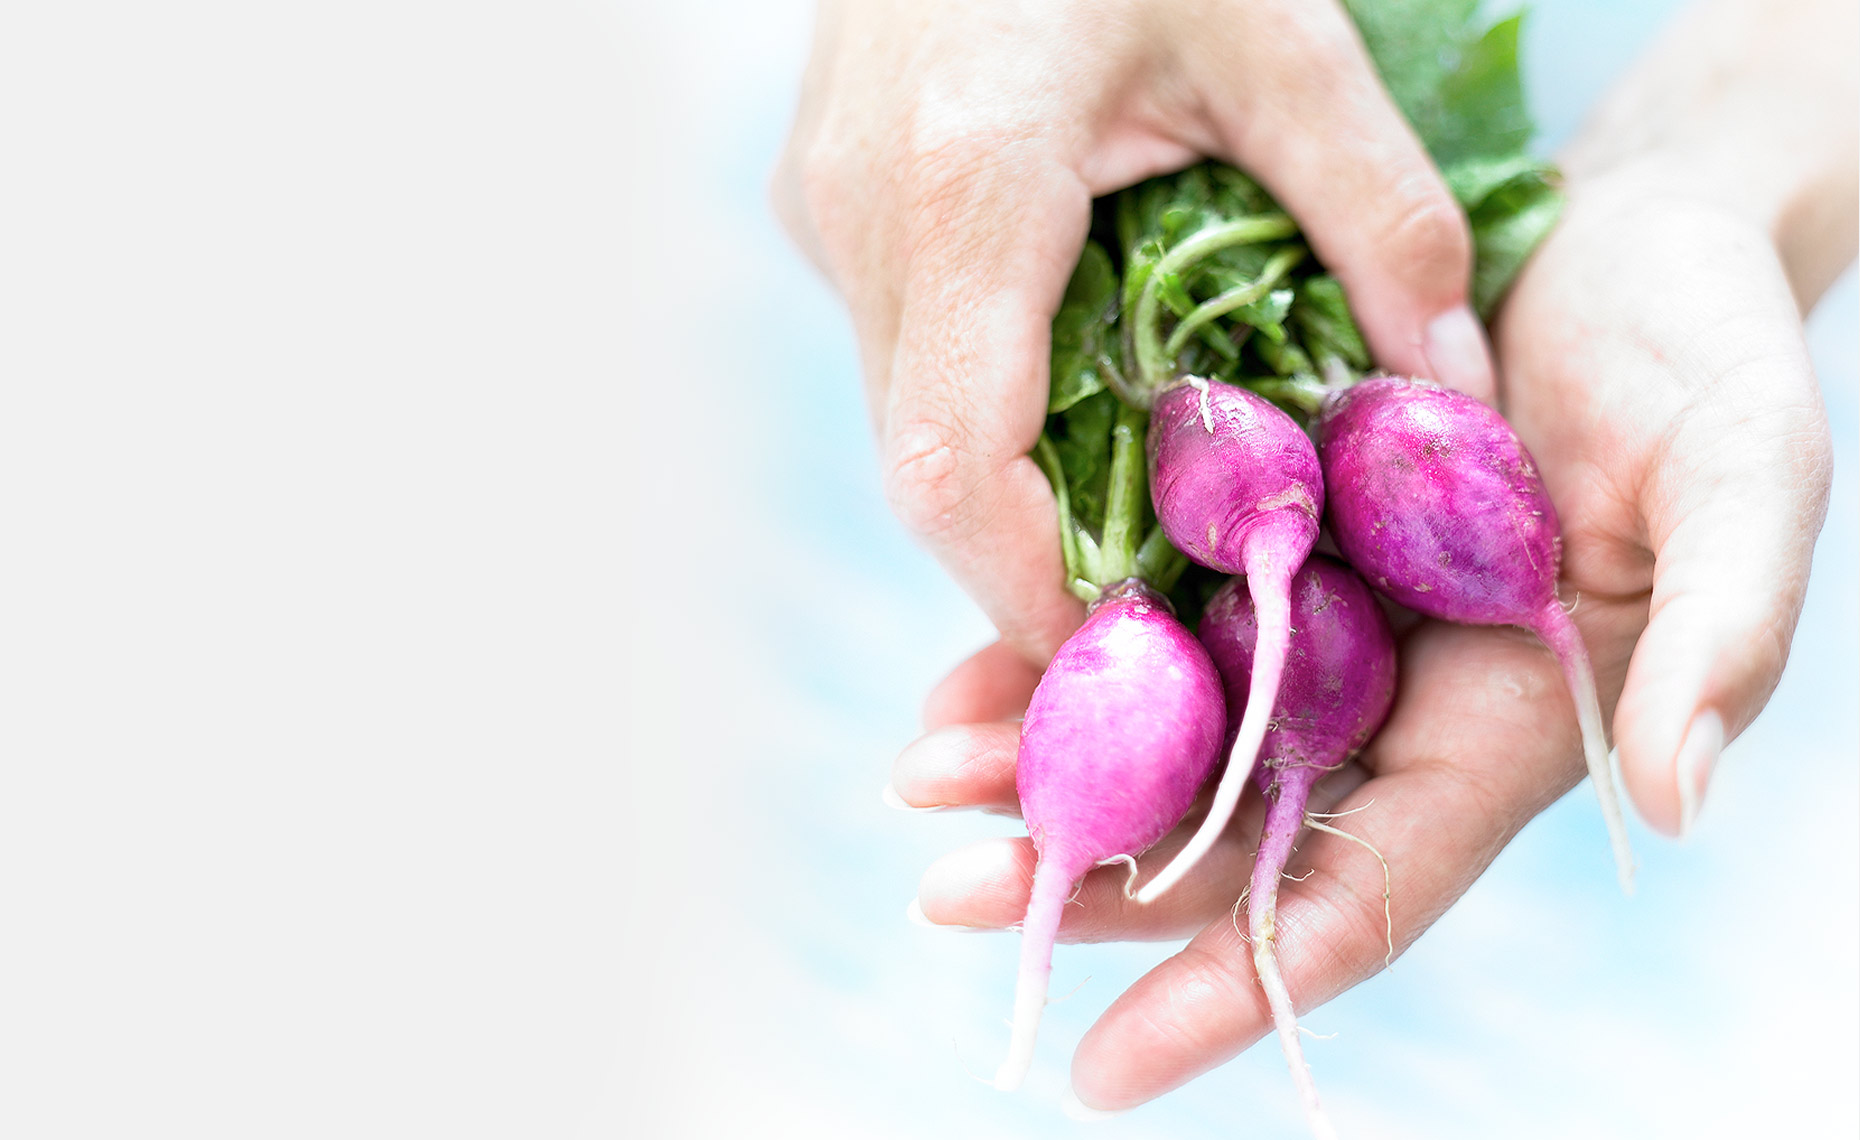 Hands-Radishes_2_FULL